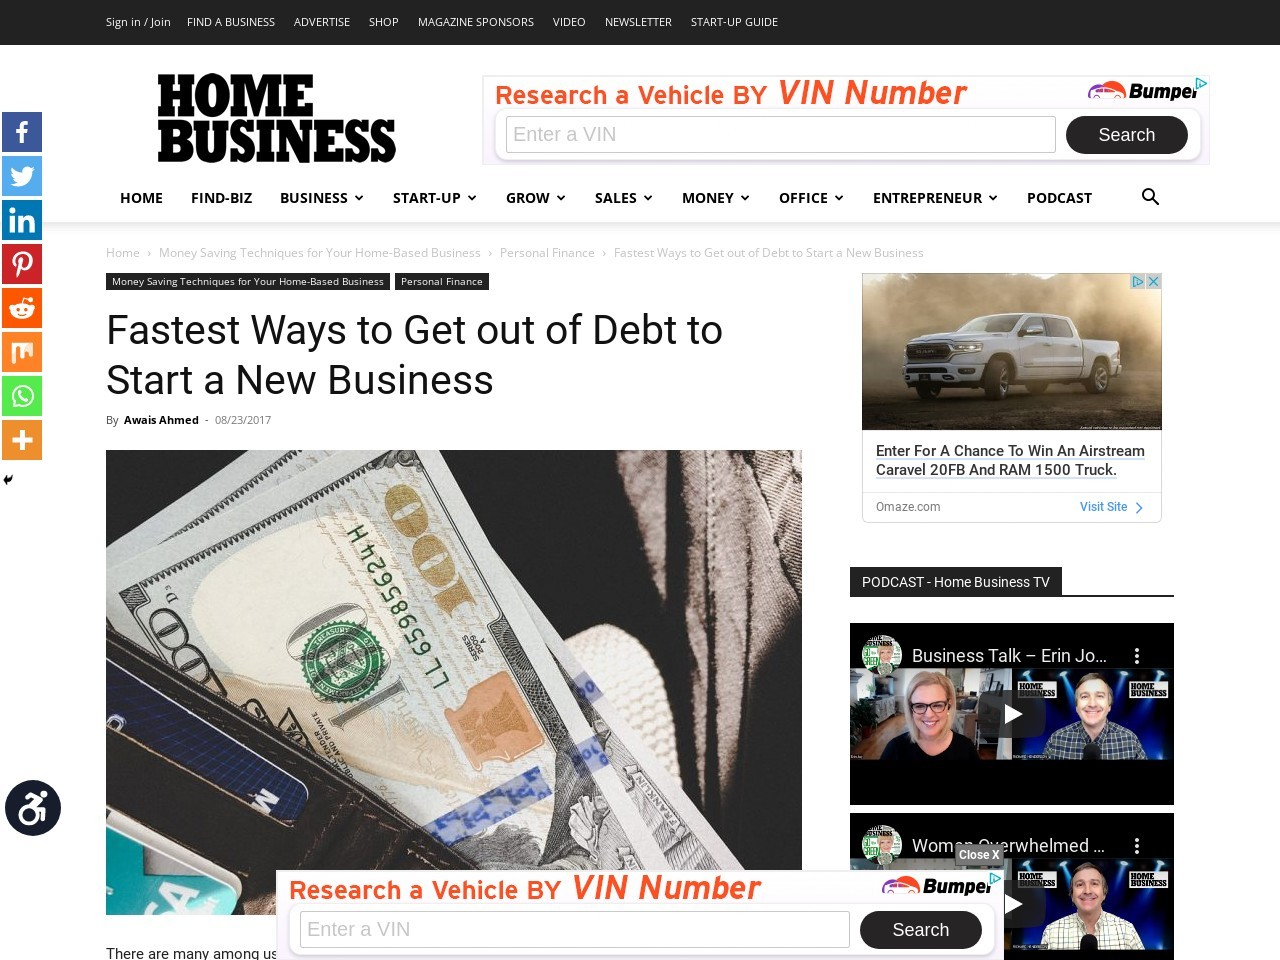 Fastest Ways to Get out of Debt to Start a New Business